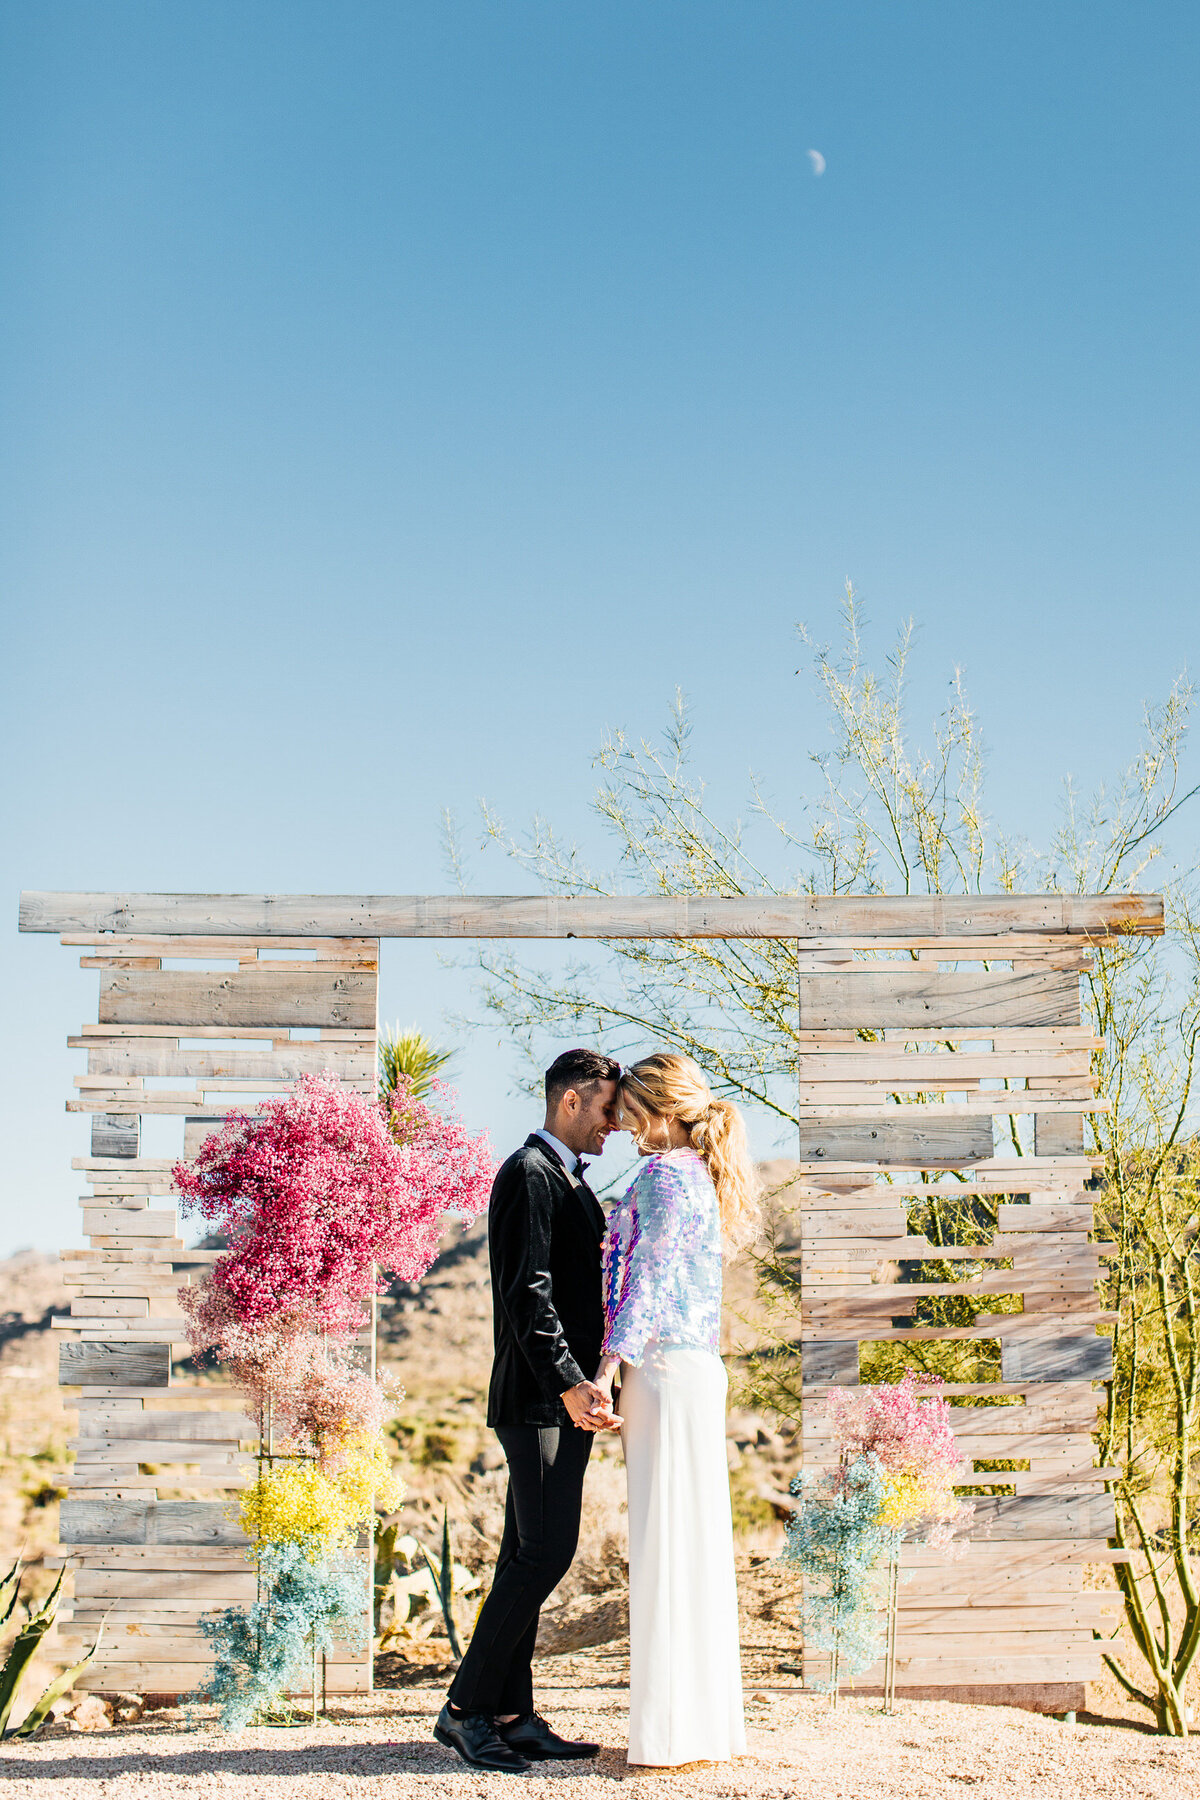 colorful-joshua-tree-elopement-inspiration-joshua-tree-wedding-photographer-palm-springs-wedding-photographer-erin-marton-photography-14